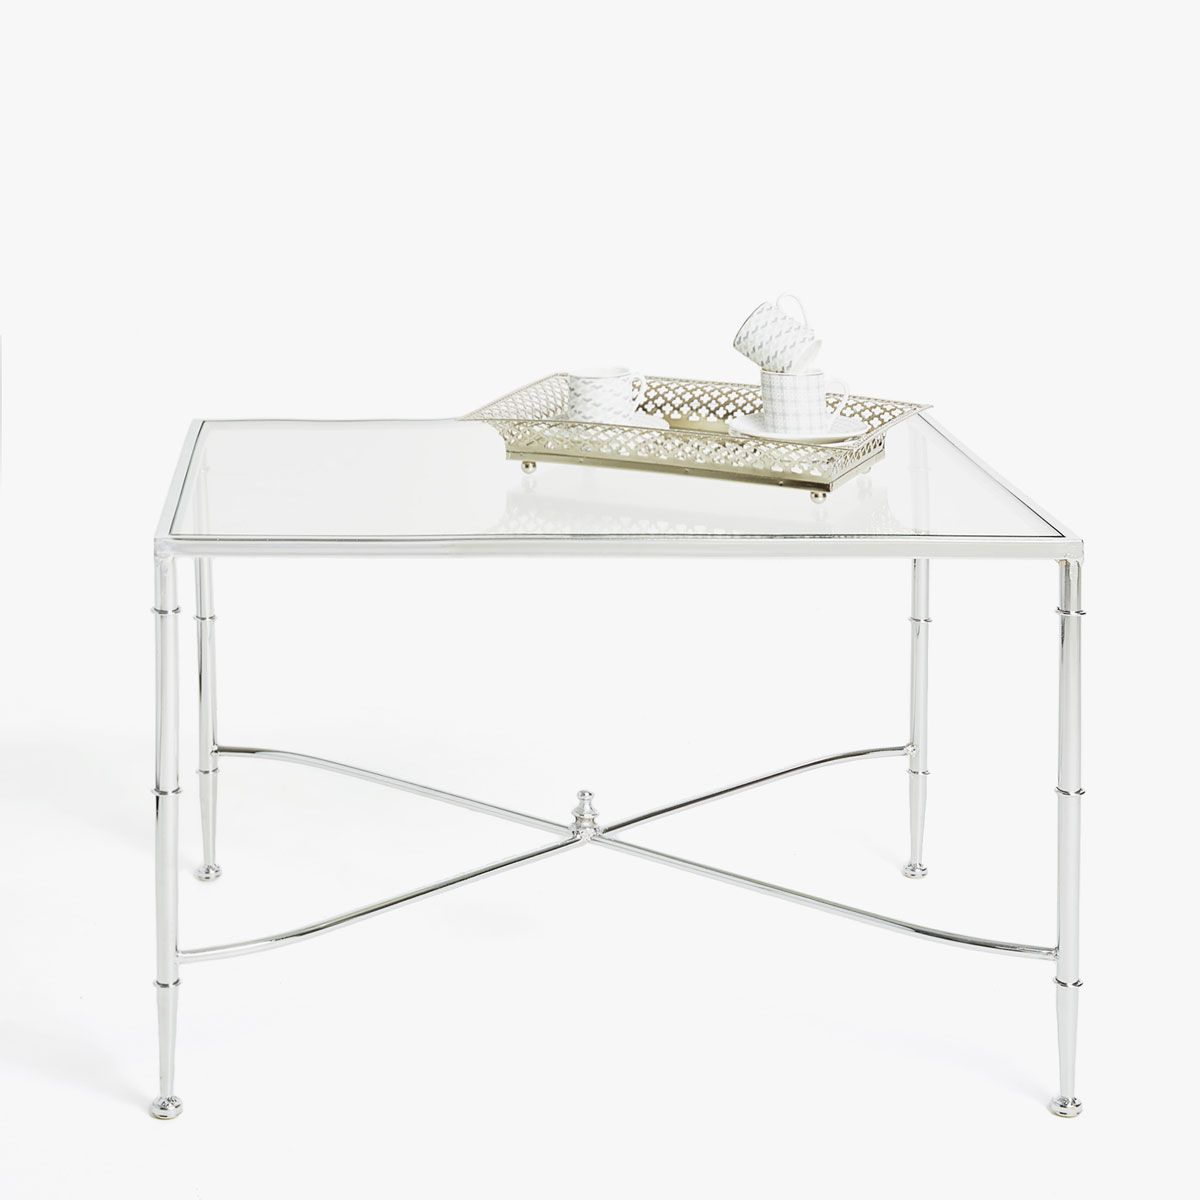 Image 1 Du Produit Table Verre Base Metallique Croisee Glass Table Table Coffee Table